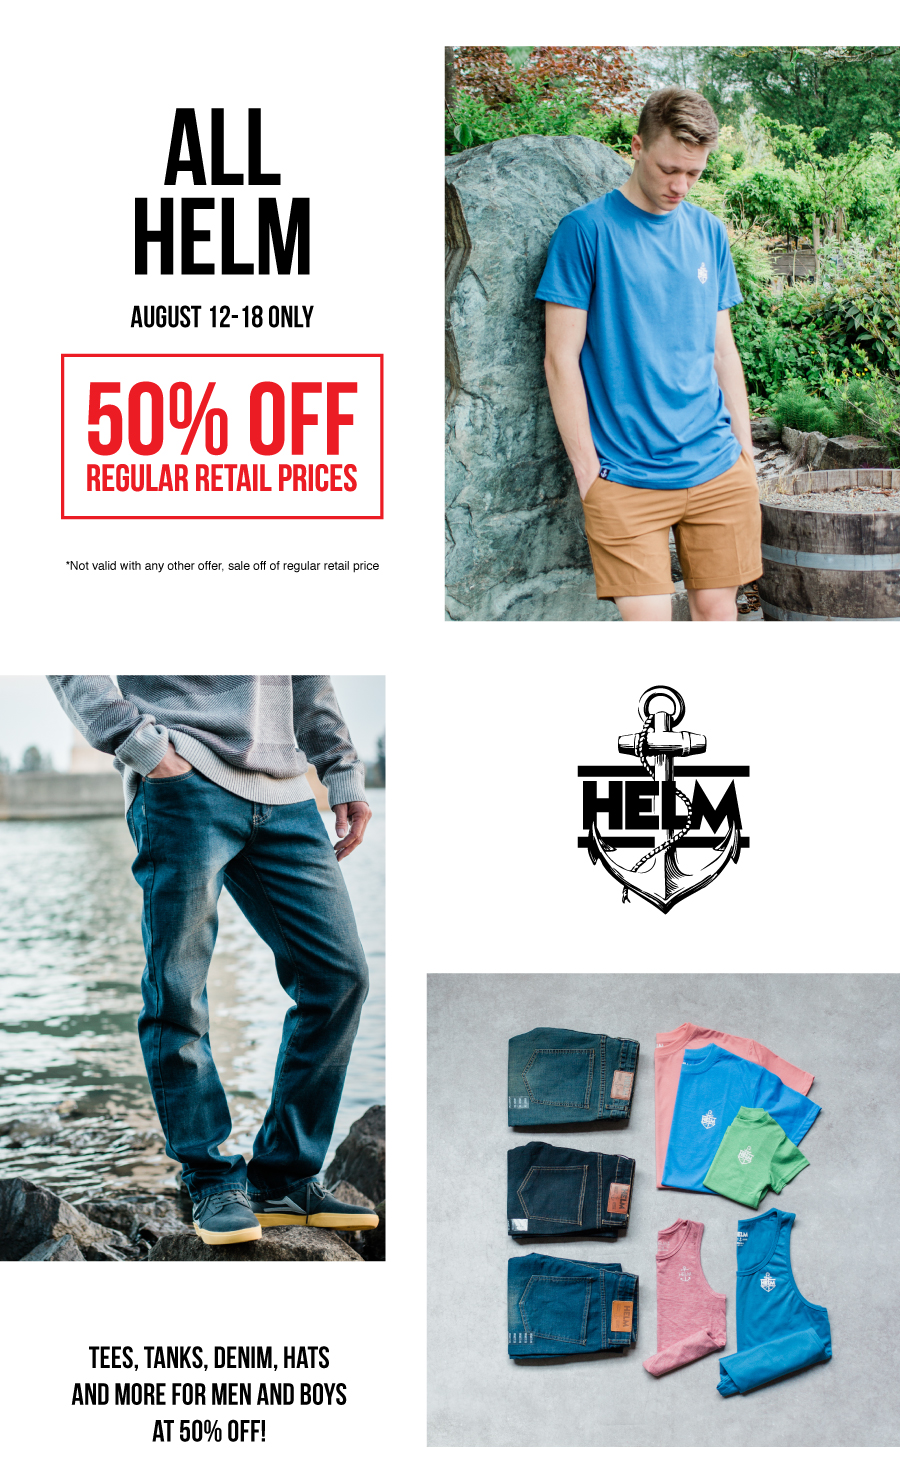 Deal of the week, 50% off all HELM APPAREL